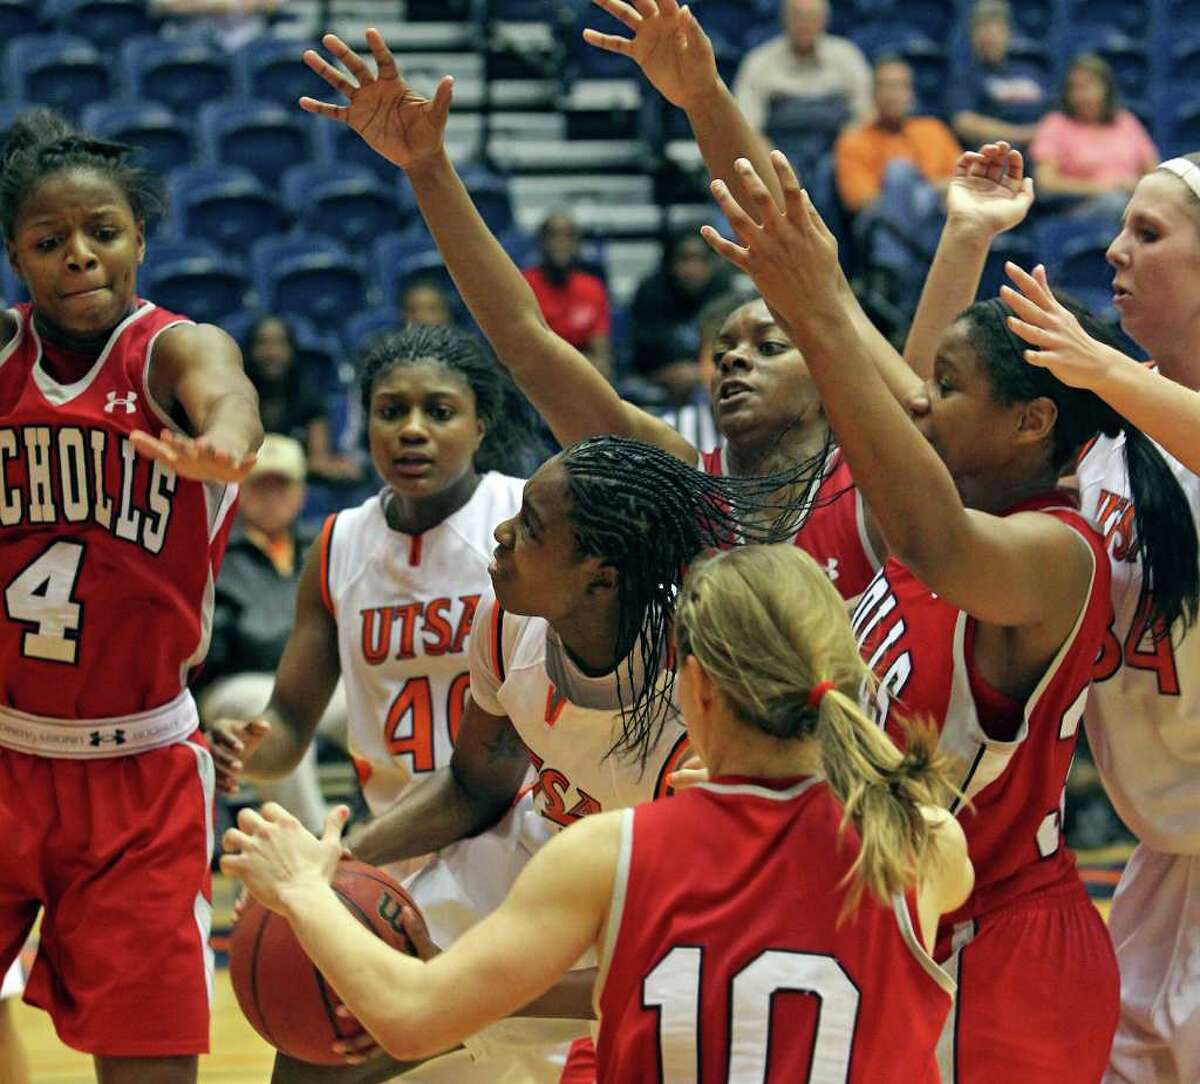 Roadrunners forward Ashley Gardner takes a rebound and gets a shot at winning the game in regulation as the UTSA women play Nicholls at the UTSA Convocation Center on Saturday, Feb. 19, 2011.